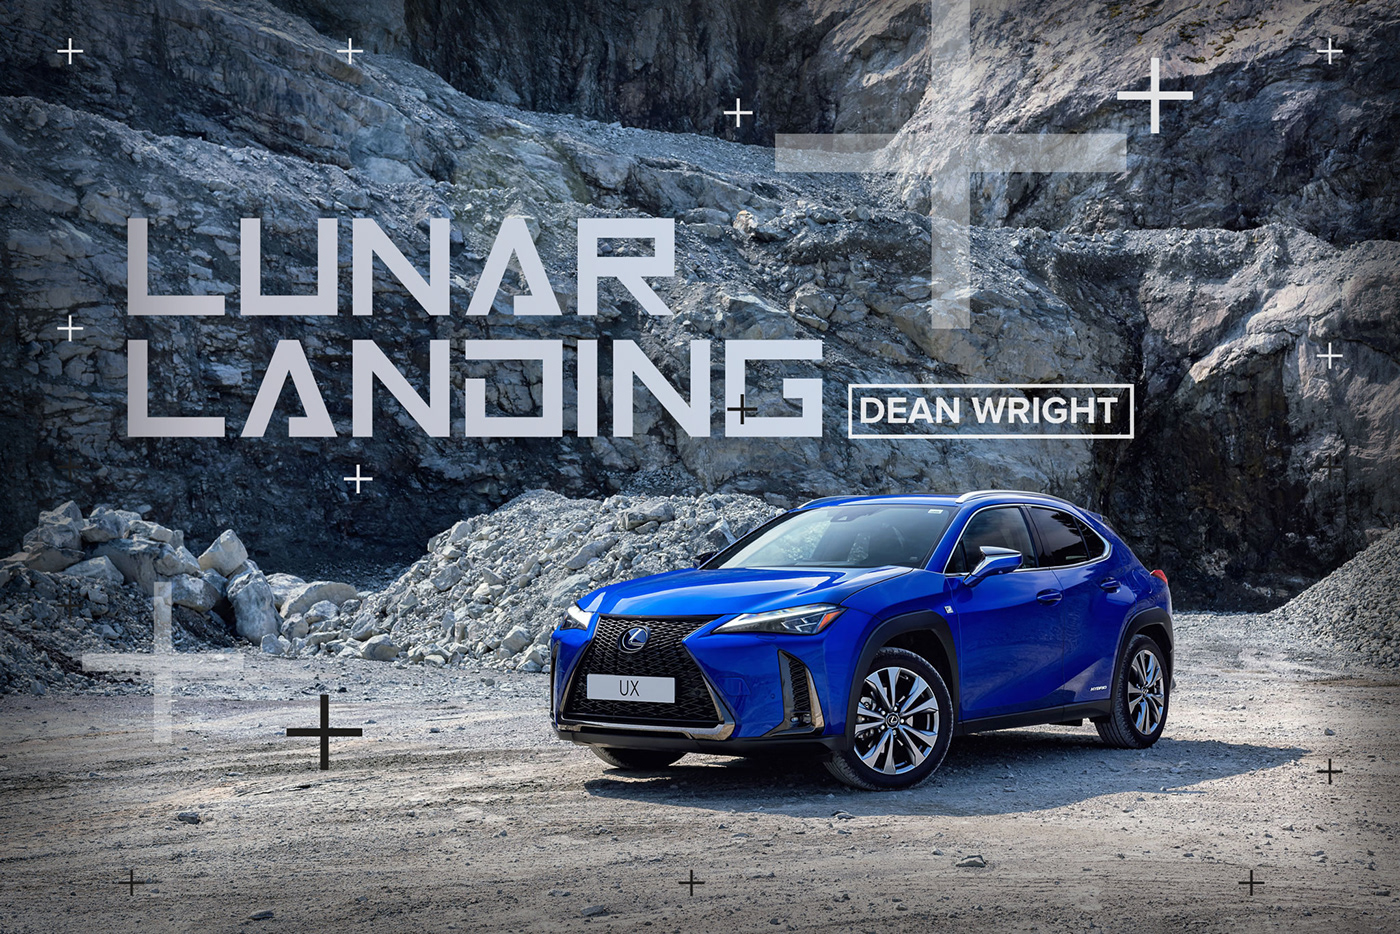 Lexus UX Hybrid car photography by Dean Wright Automotive. shot on location in Scotland.